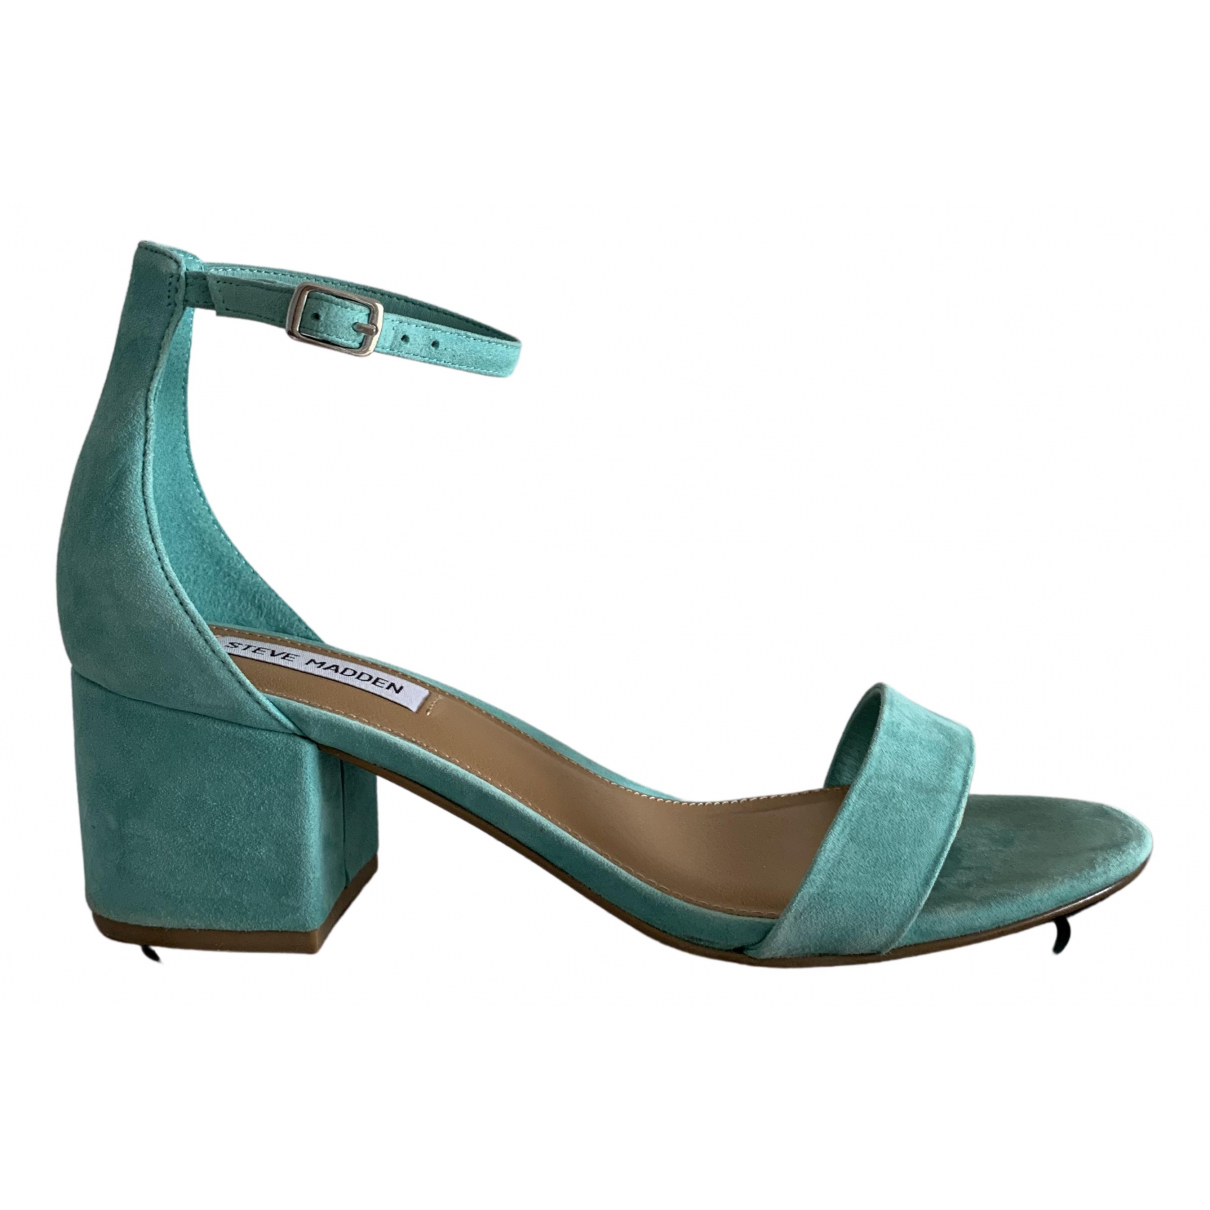 Steve Madden N Turquoise Suede Sandals for Women 38.5 EU